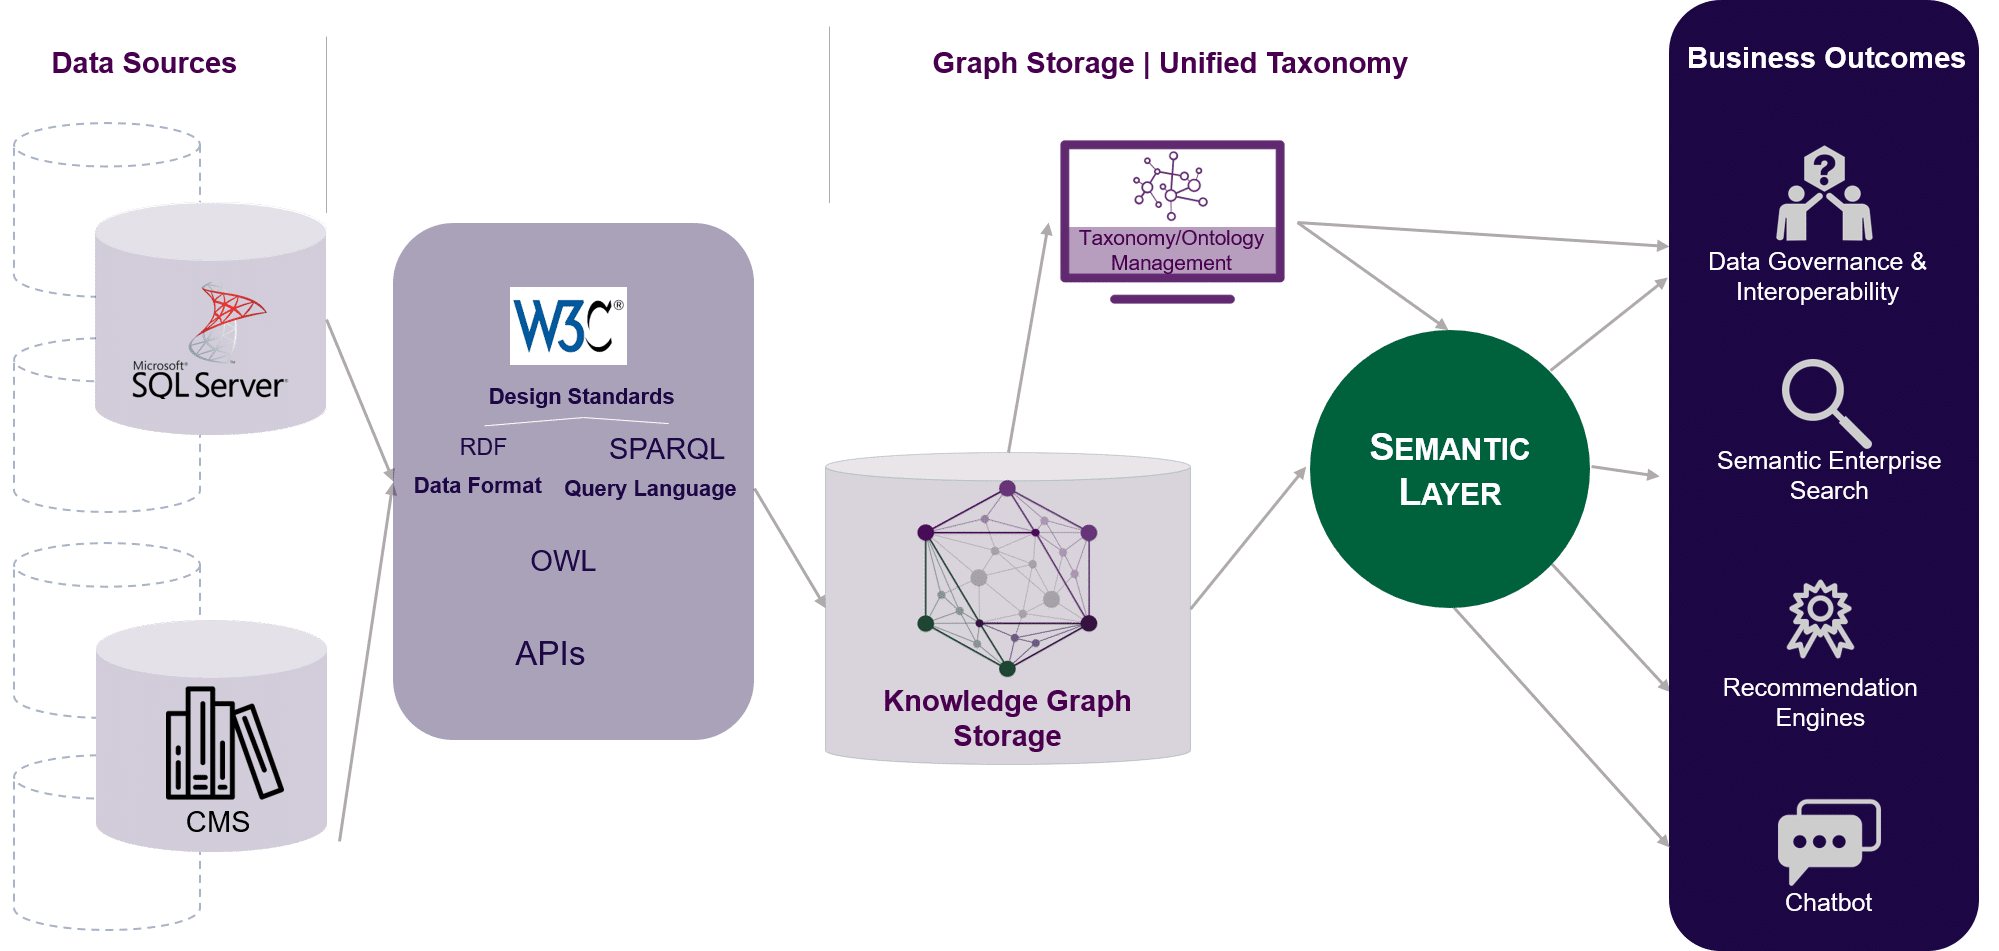 Visual representation of semantic layer architecture. Shows how to go from data sources, to data modeling/transformation/unification and standardization, to graph storage and a unified taxonomy, to finally a semantic layer, and then lists some of the business outcomes.